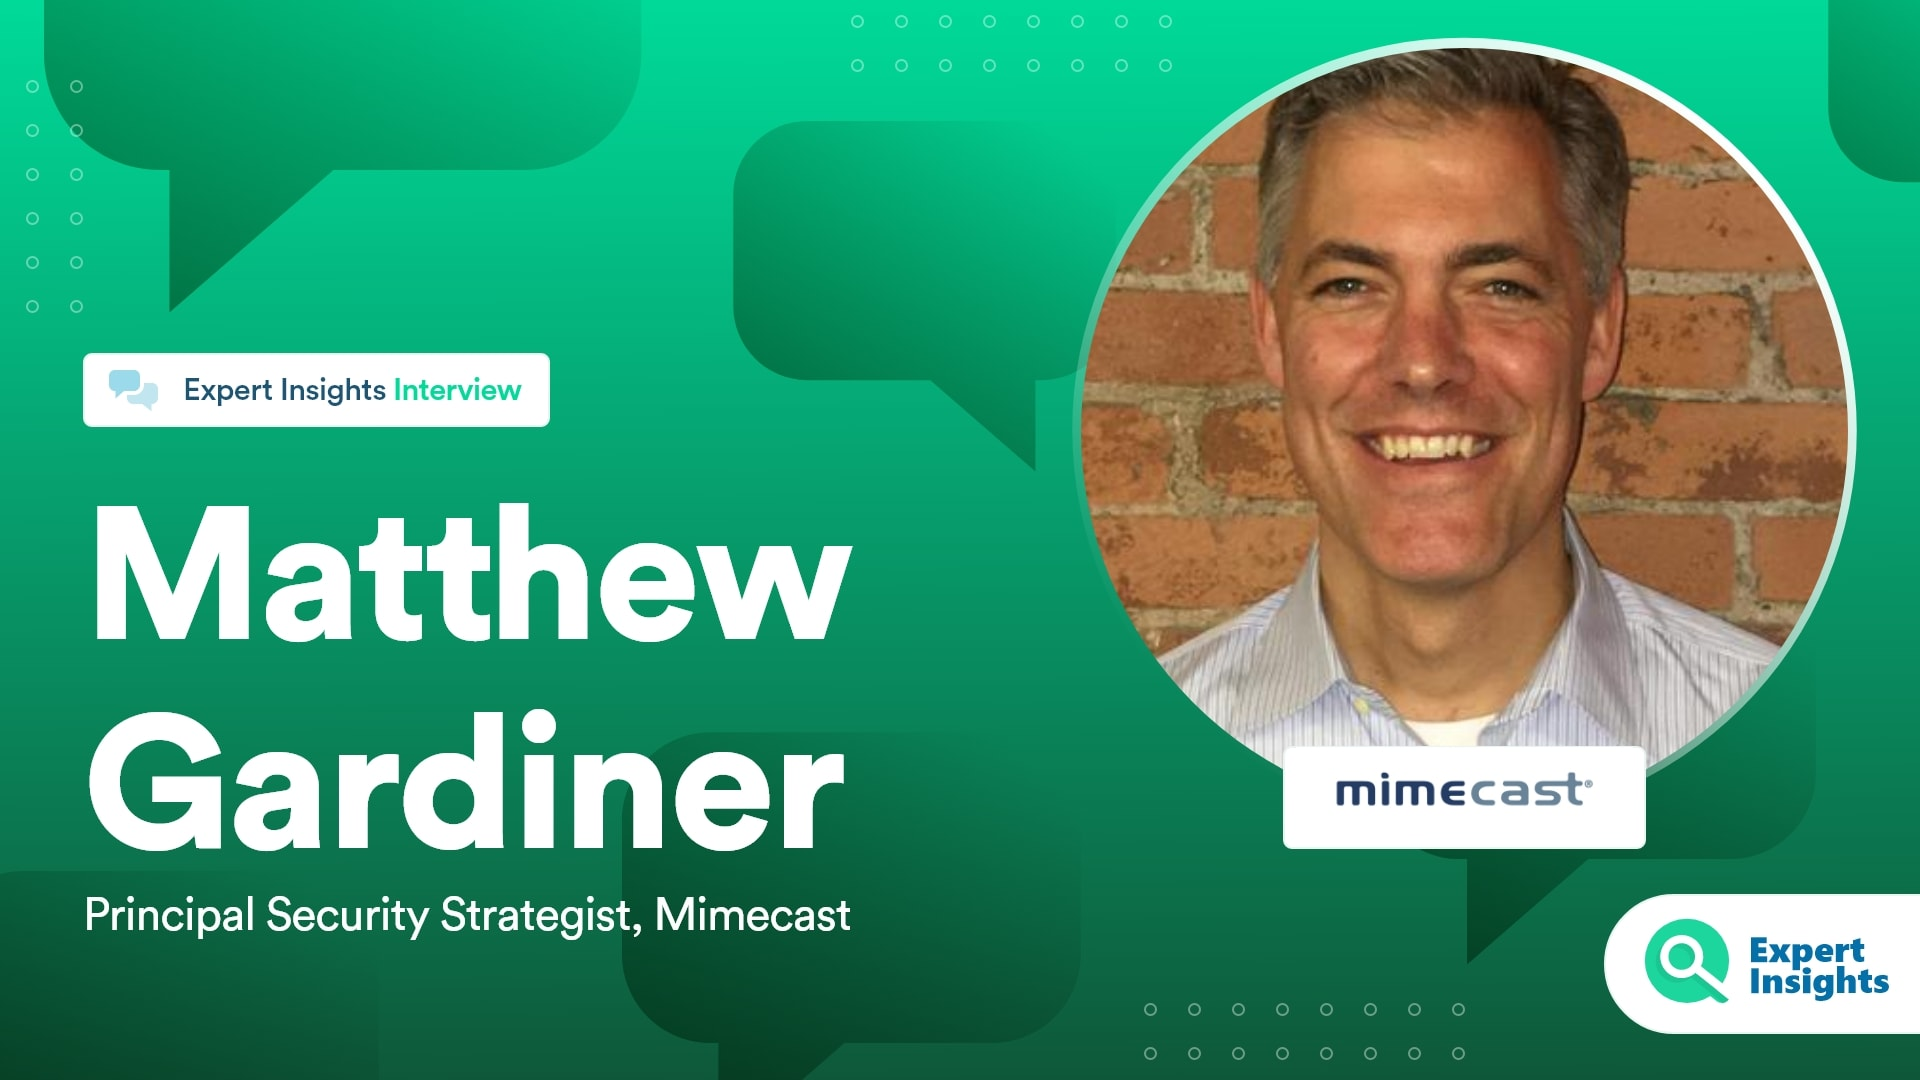 Expert Insights Interview With Matthew Gardiner Mimecast